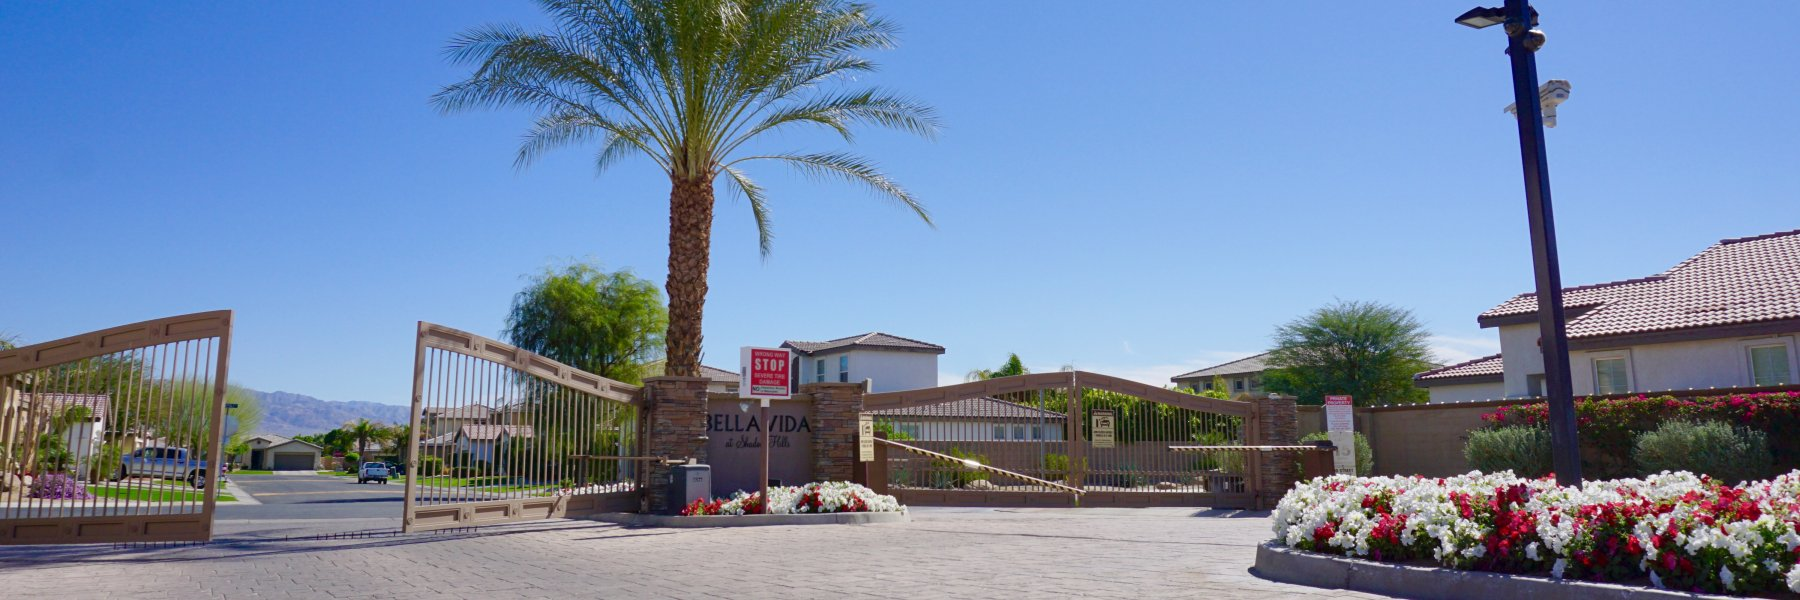 Bella Vida is a community of homes in Indio California